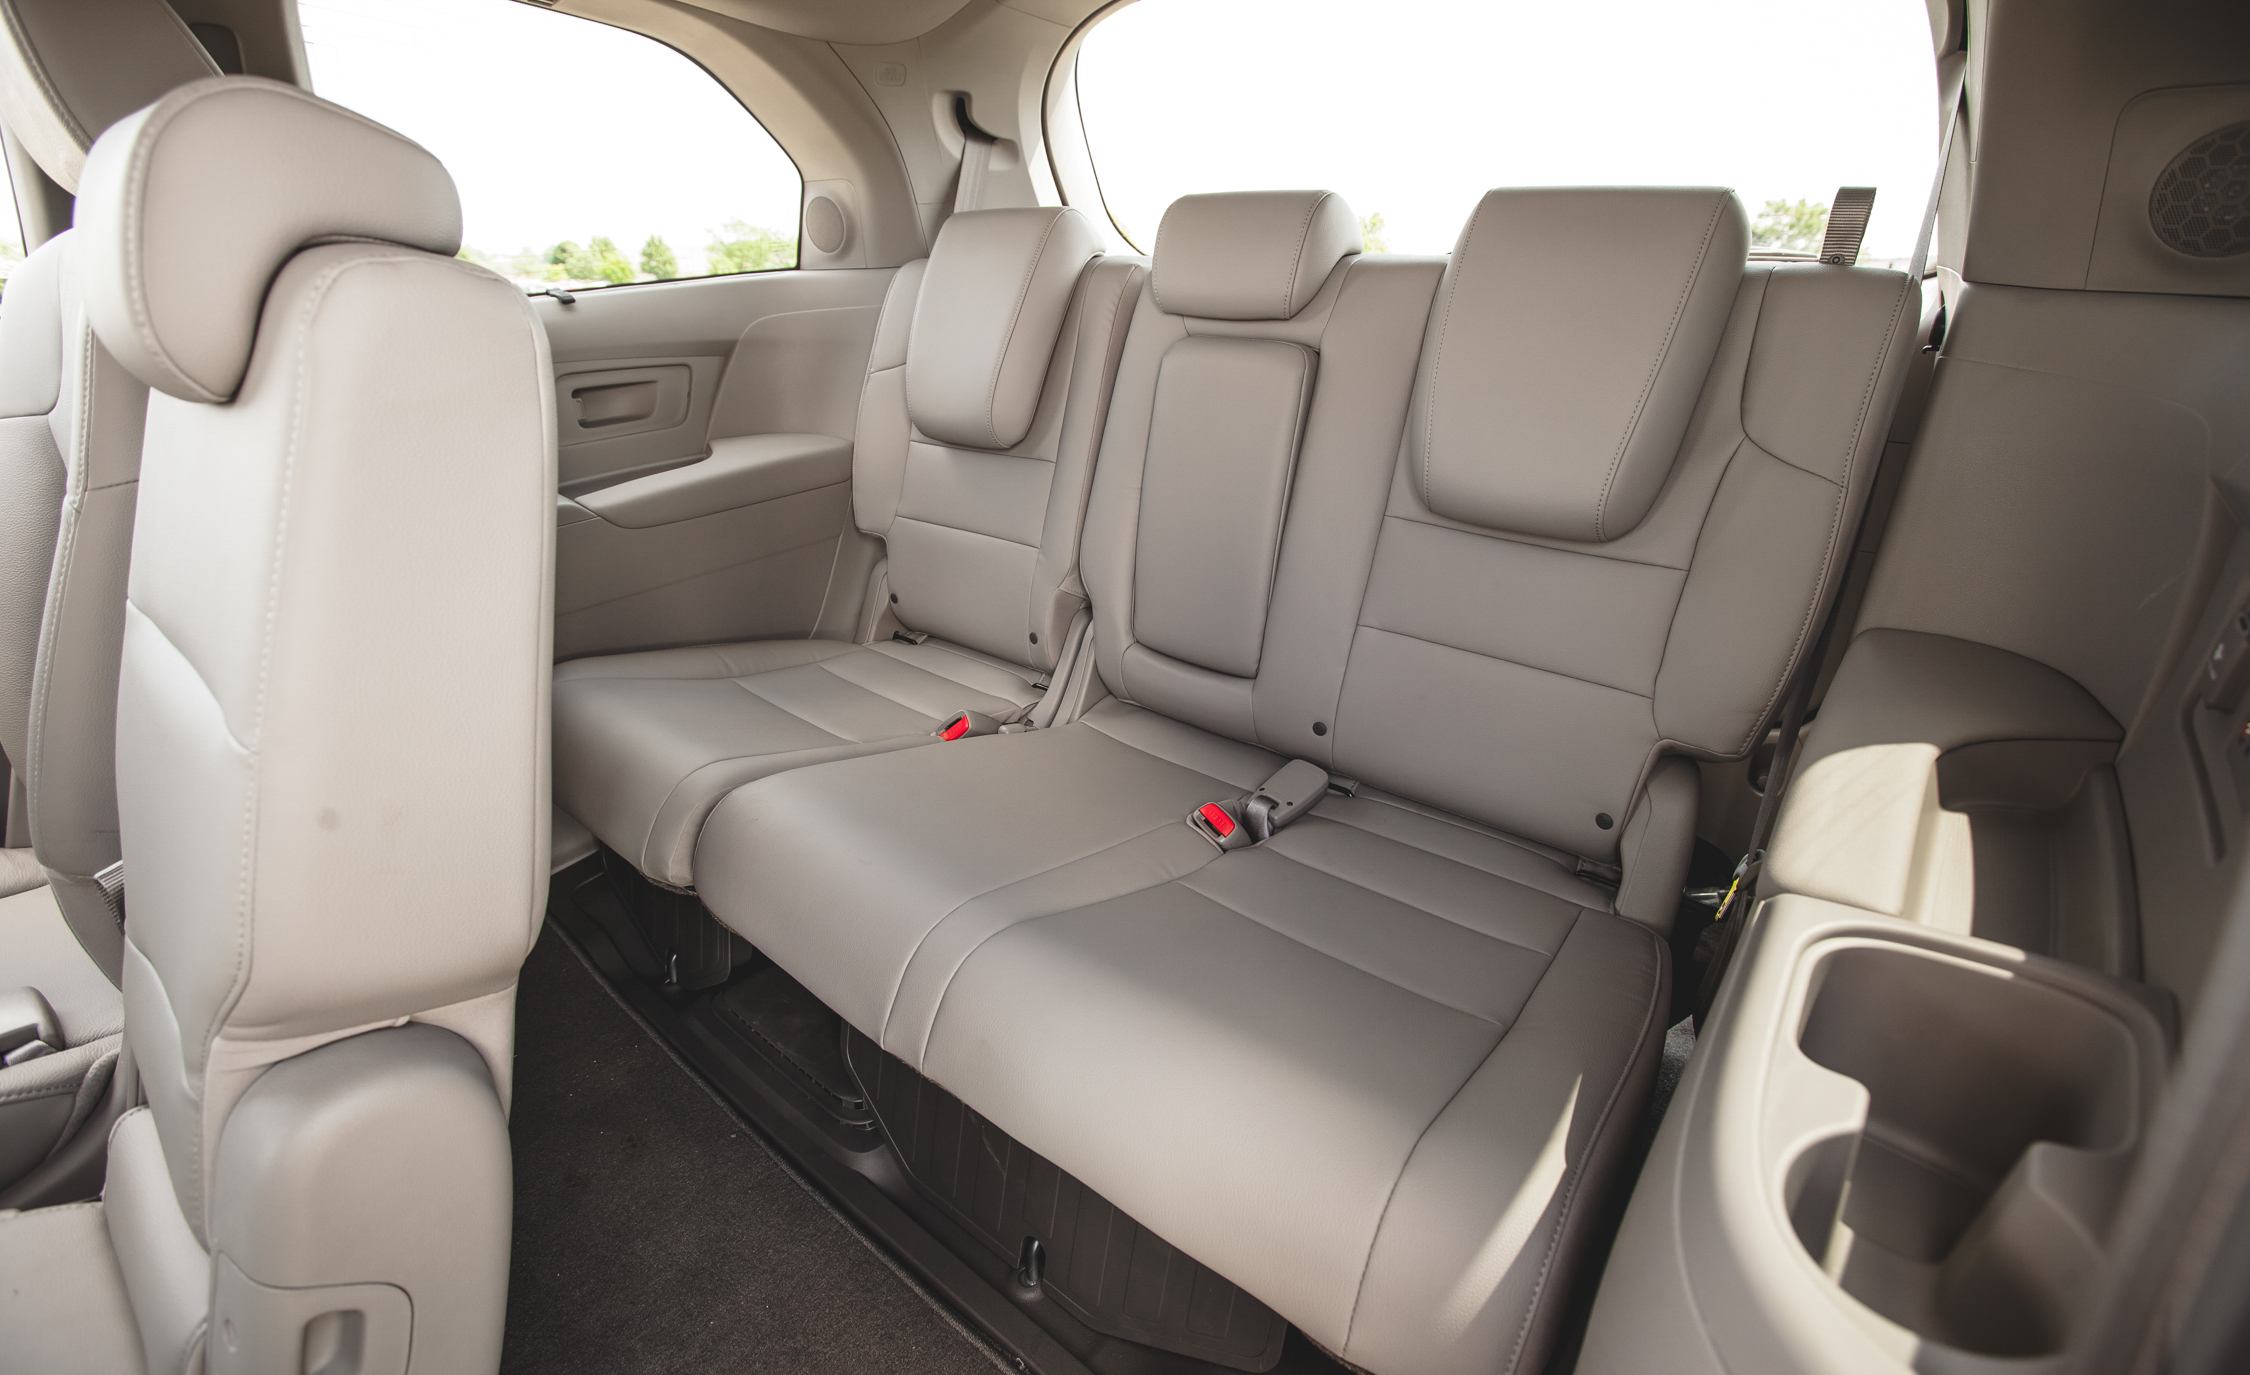 2014 Honda Odyssey Touring Elite Interior (Photo 16 of 19)